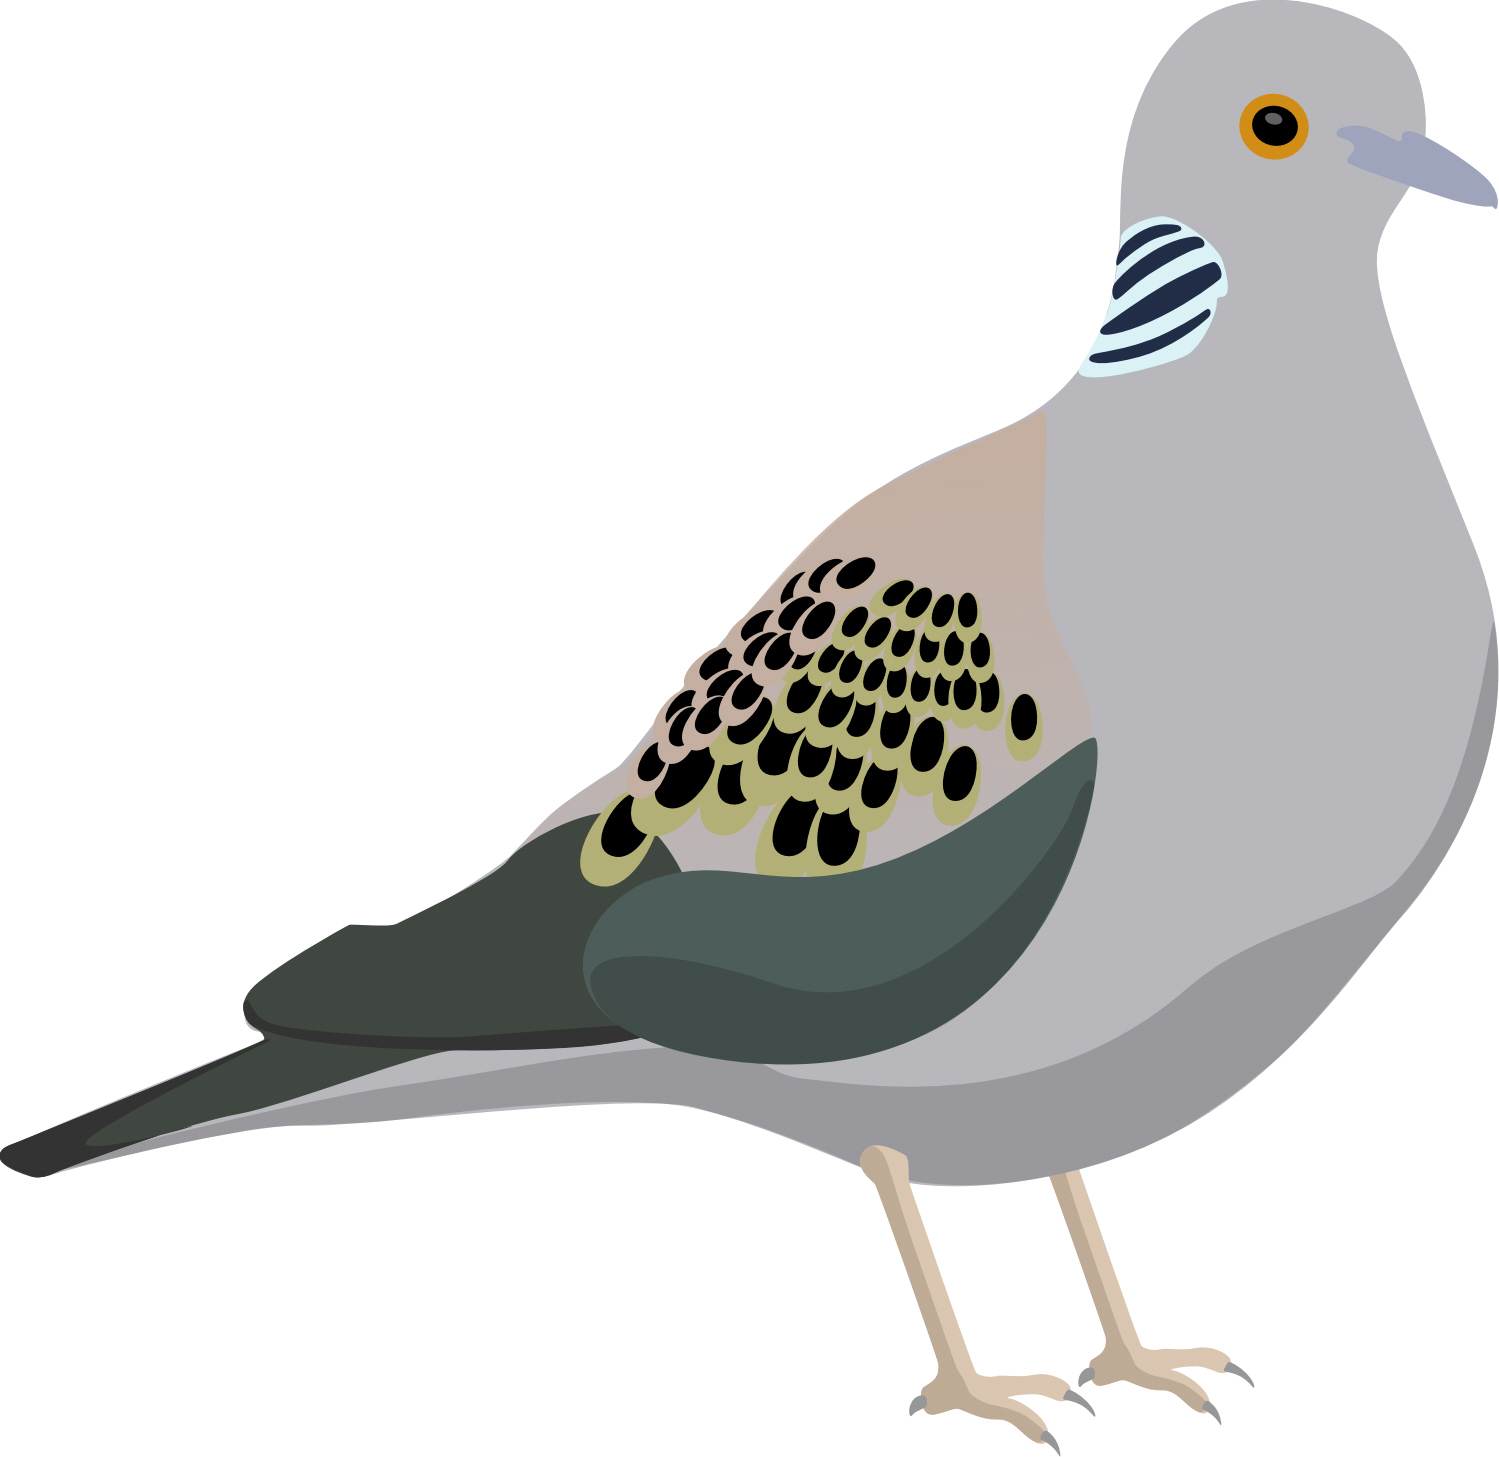 Turtle Dove clipart Clipart dove Vectors turtle Clipart